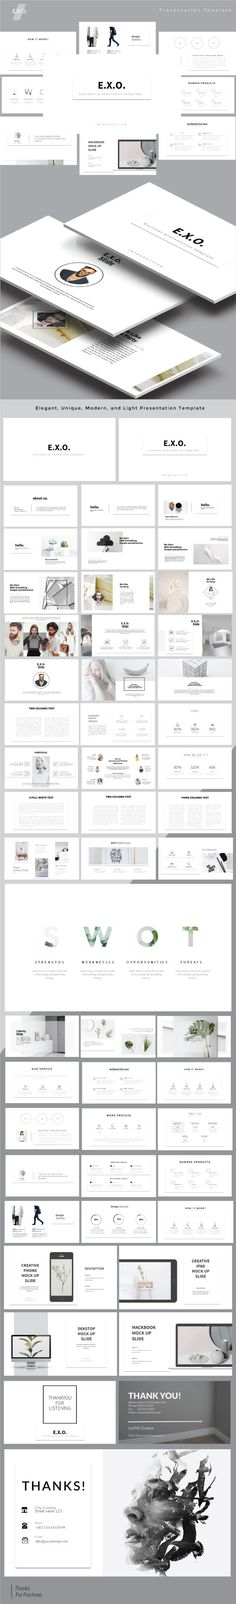 E.x.o. Keynote Presentation Templates - #Keynote #Templates #Presentation Templates Download here: https://graphicriver.net/item/exo-keynote-presentation-templates/19578580?ref=alena994